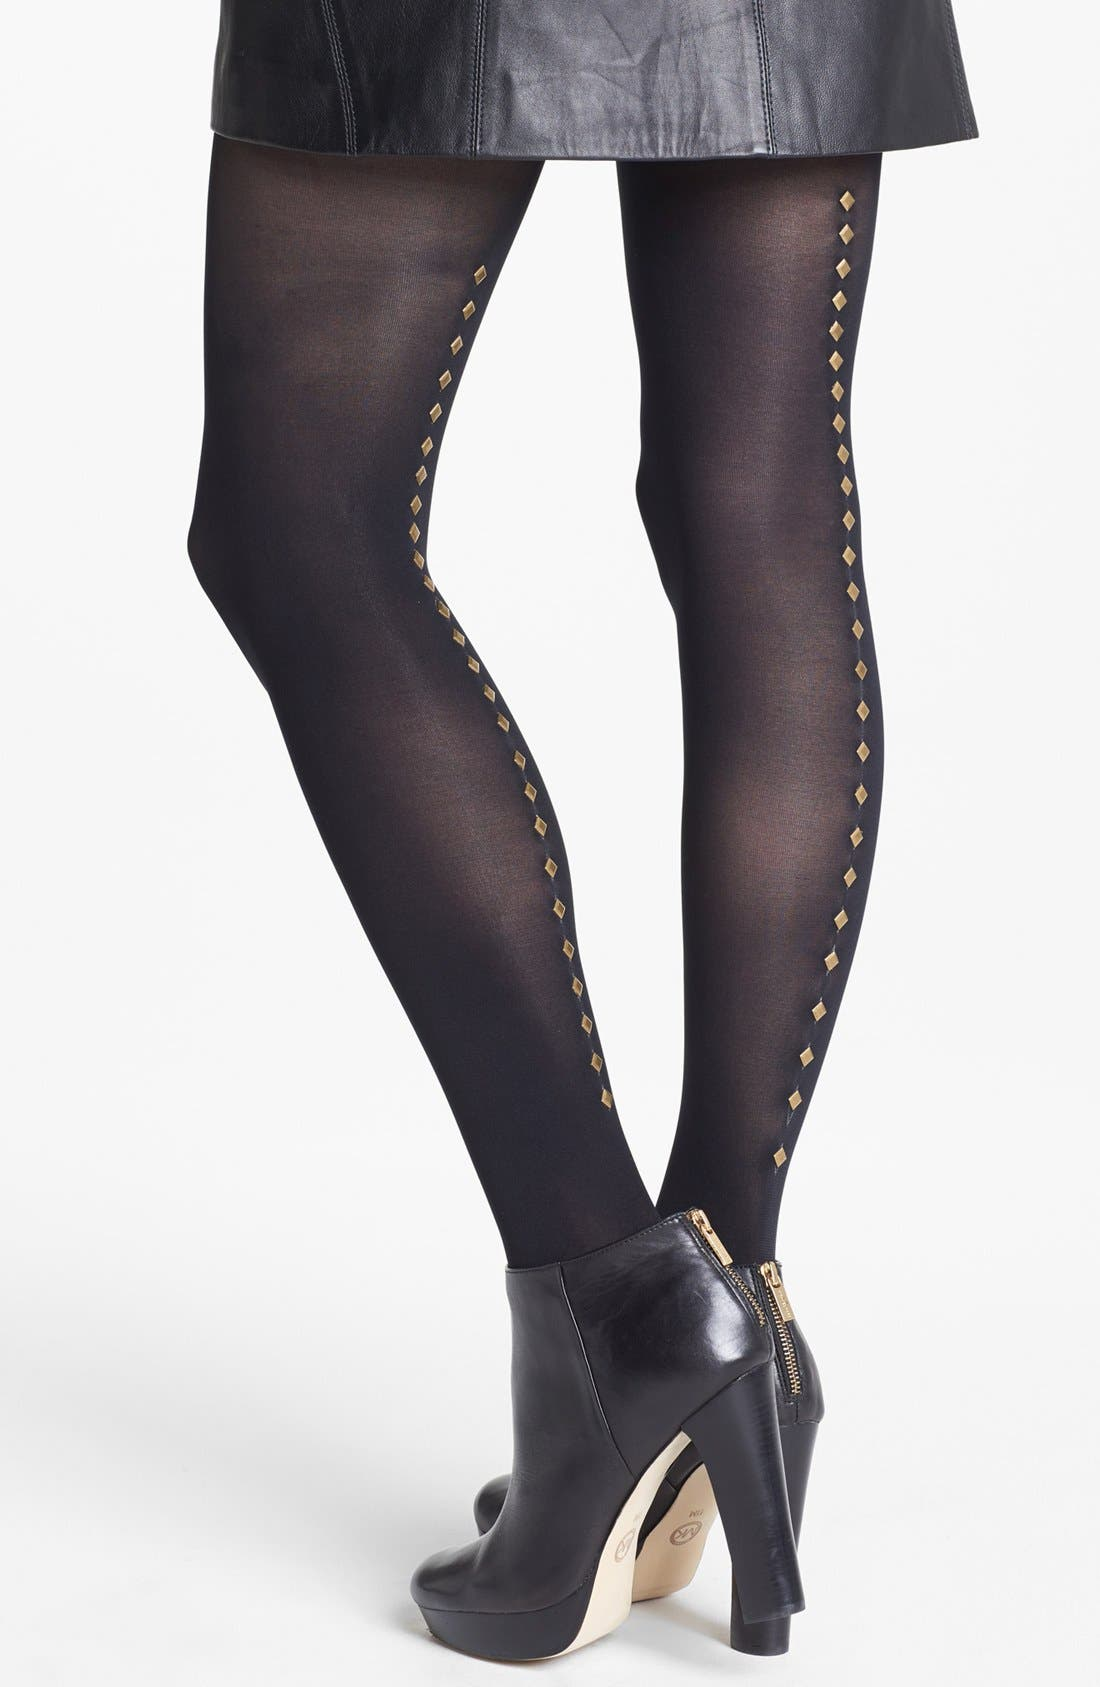 Main Image - DKNY Stud Embellished Tights